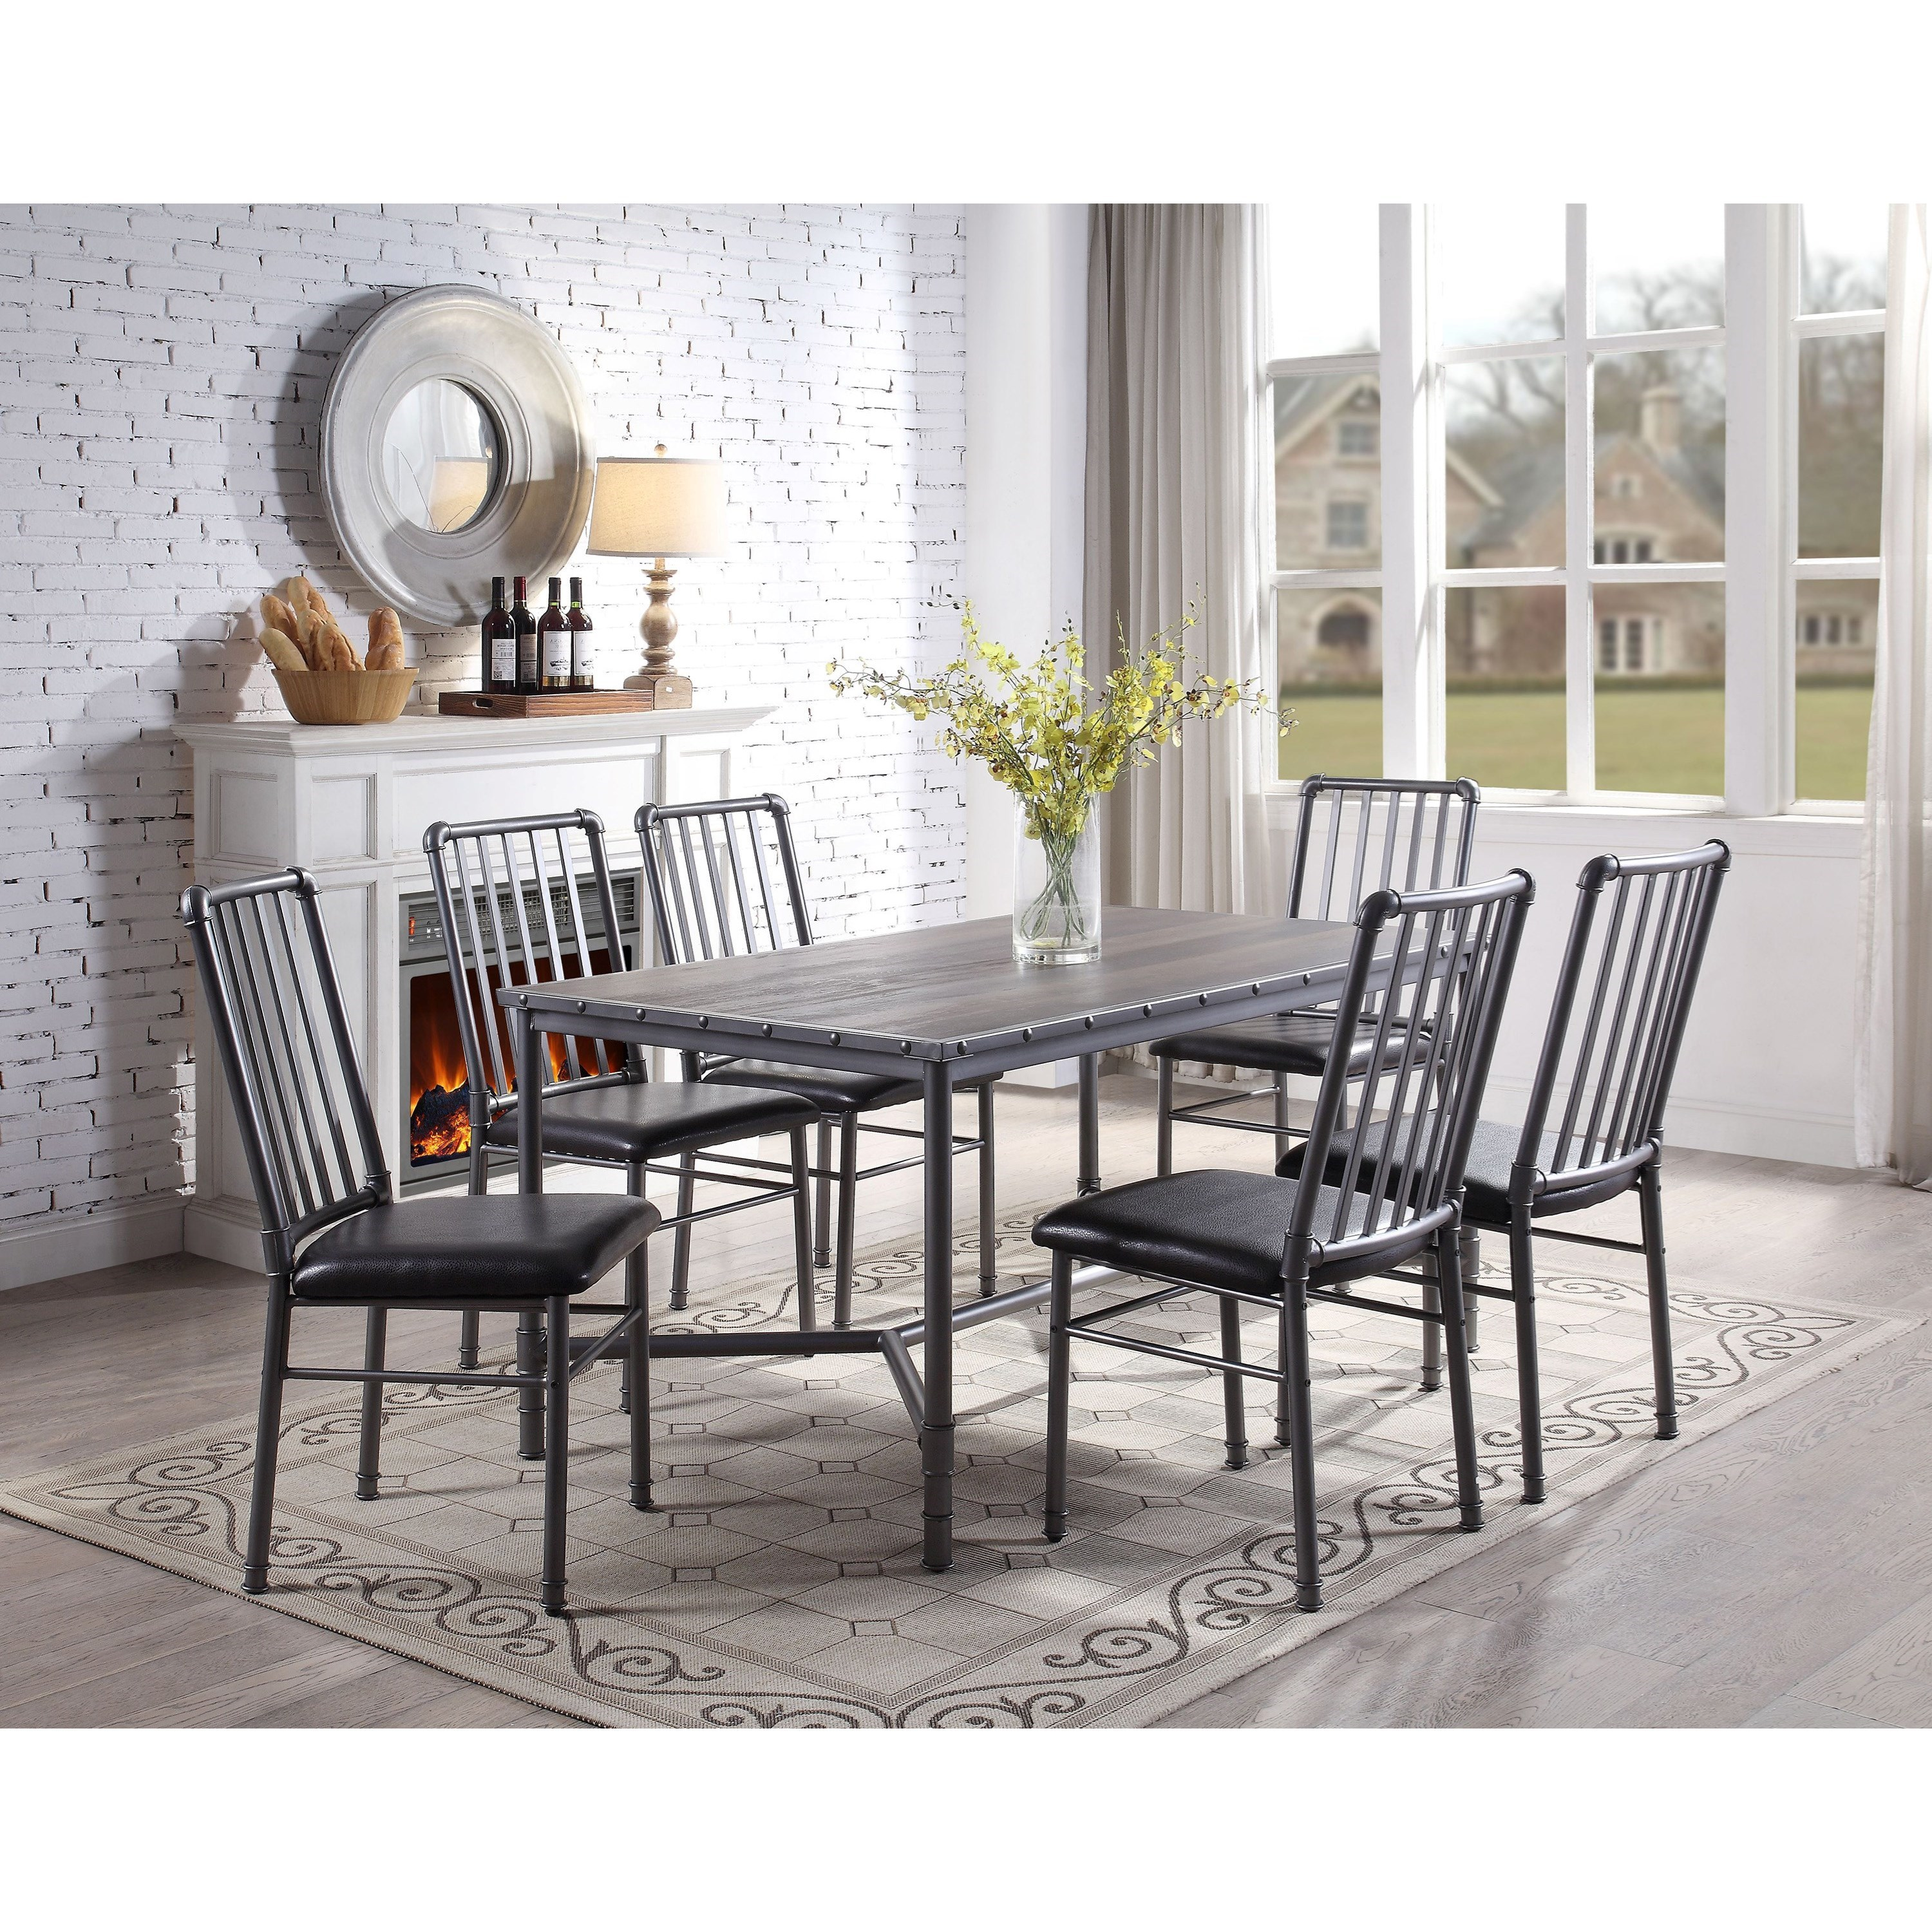 Exceptionnel Household Furniture